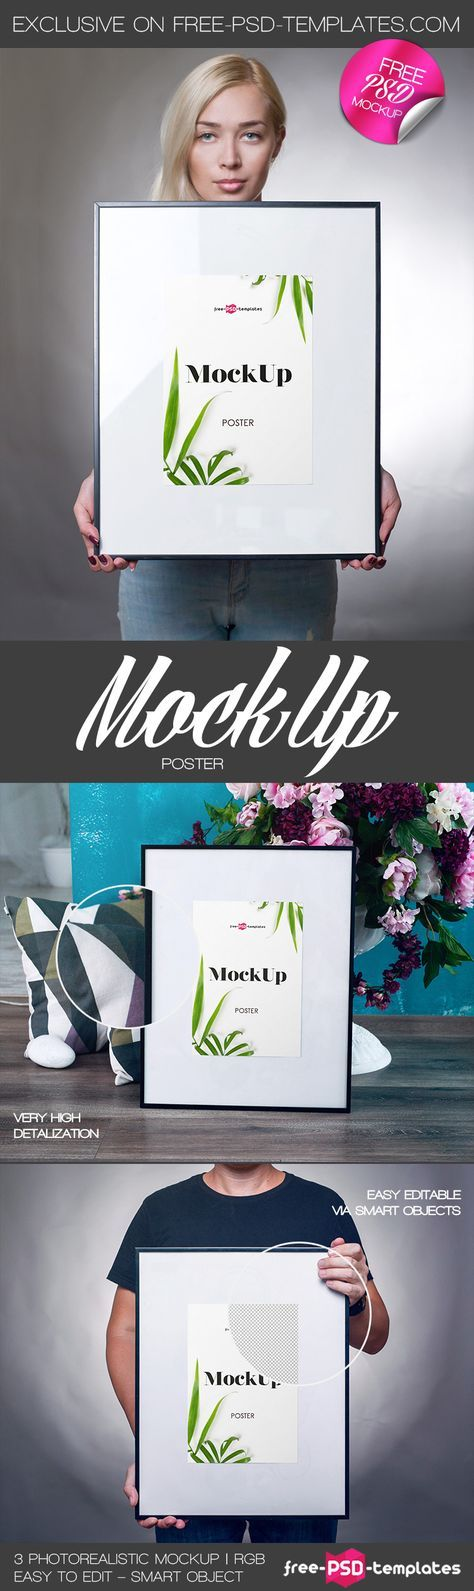 Poster Mockup Penting Free 3 Poster Mockup Psd Template Pictures Free 3 Poster Mockup